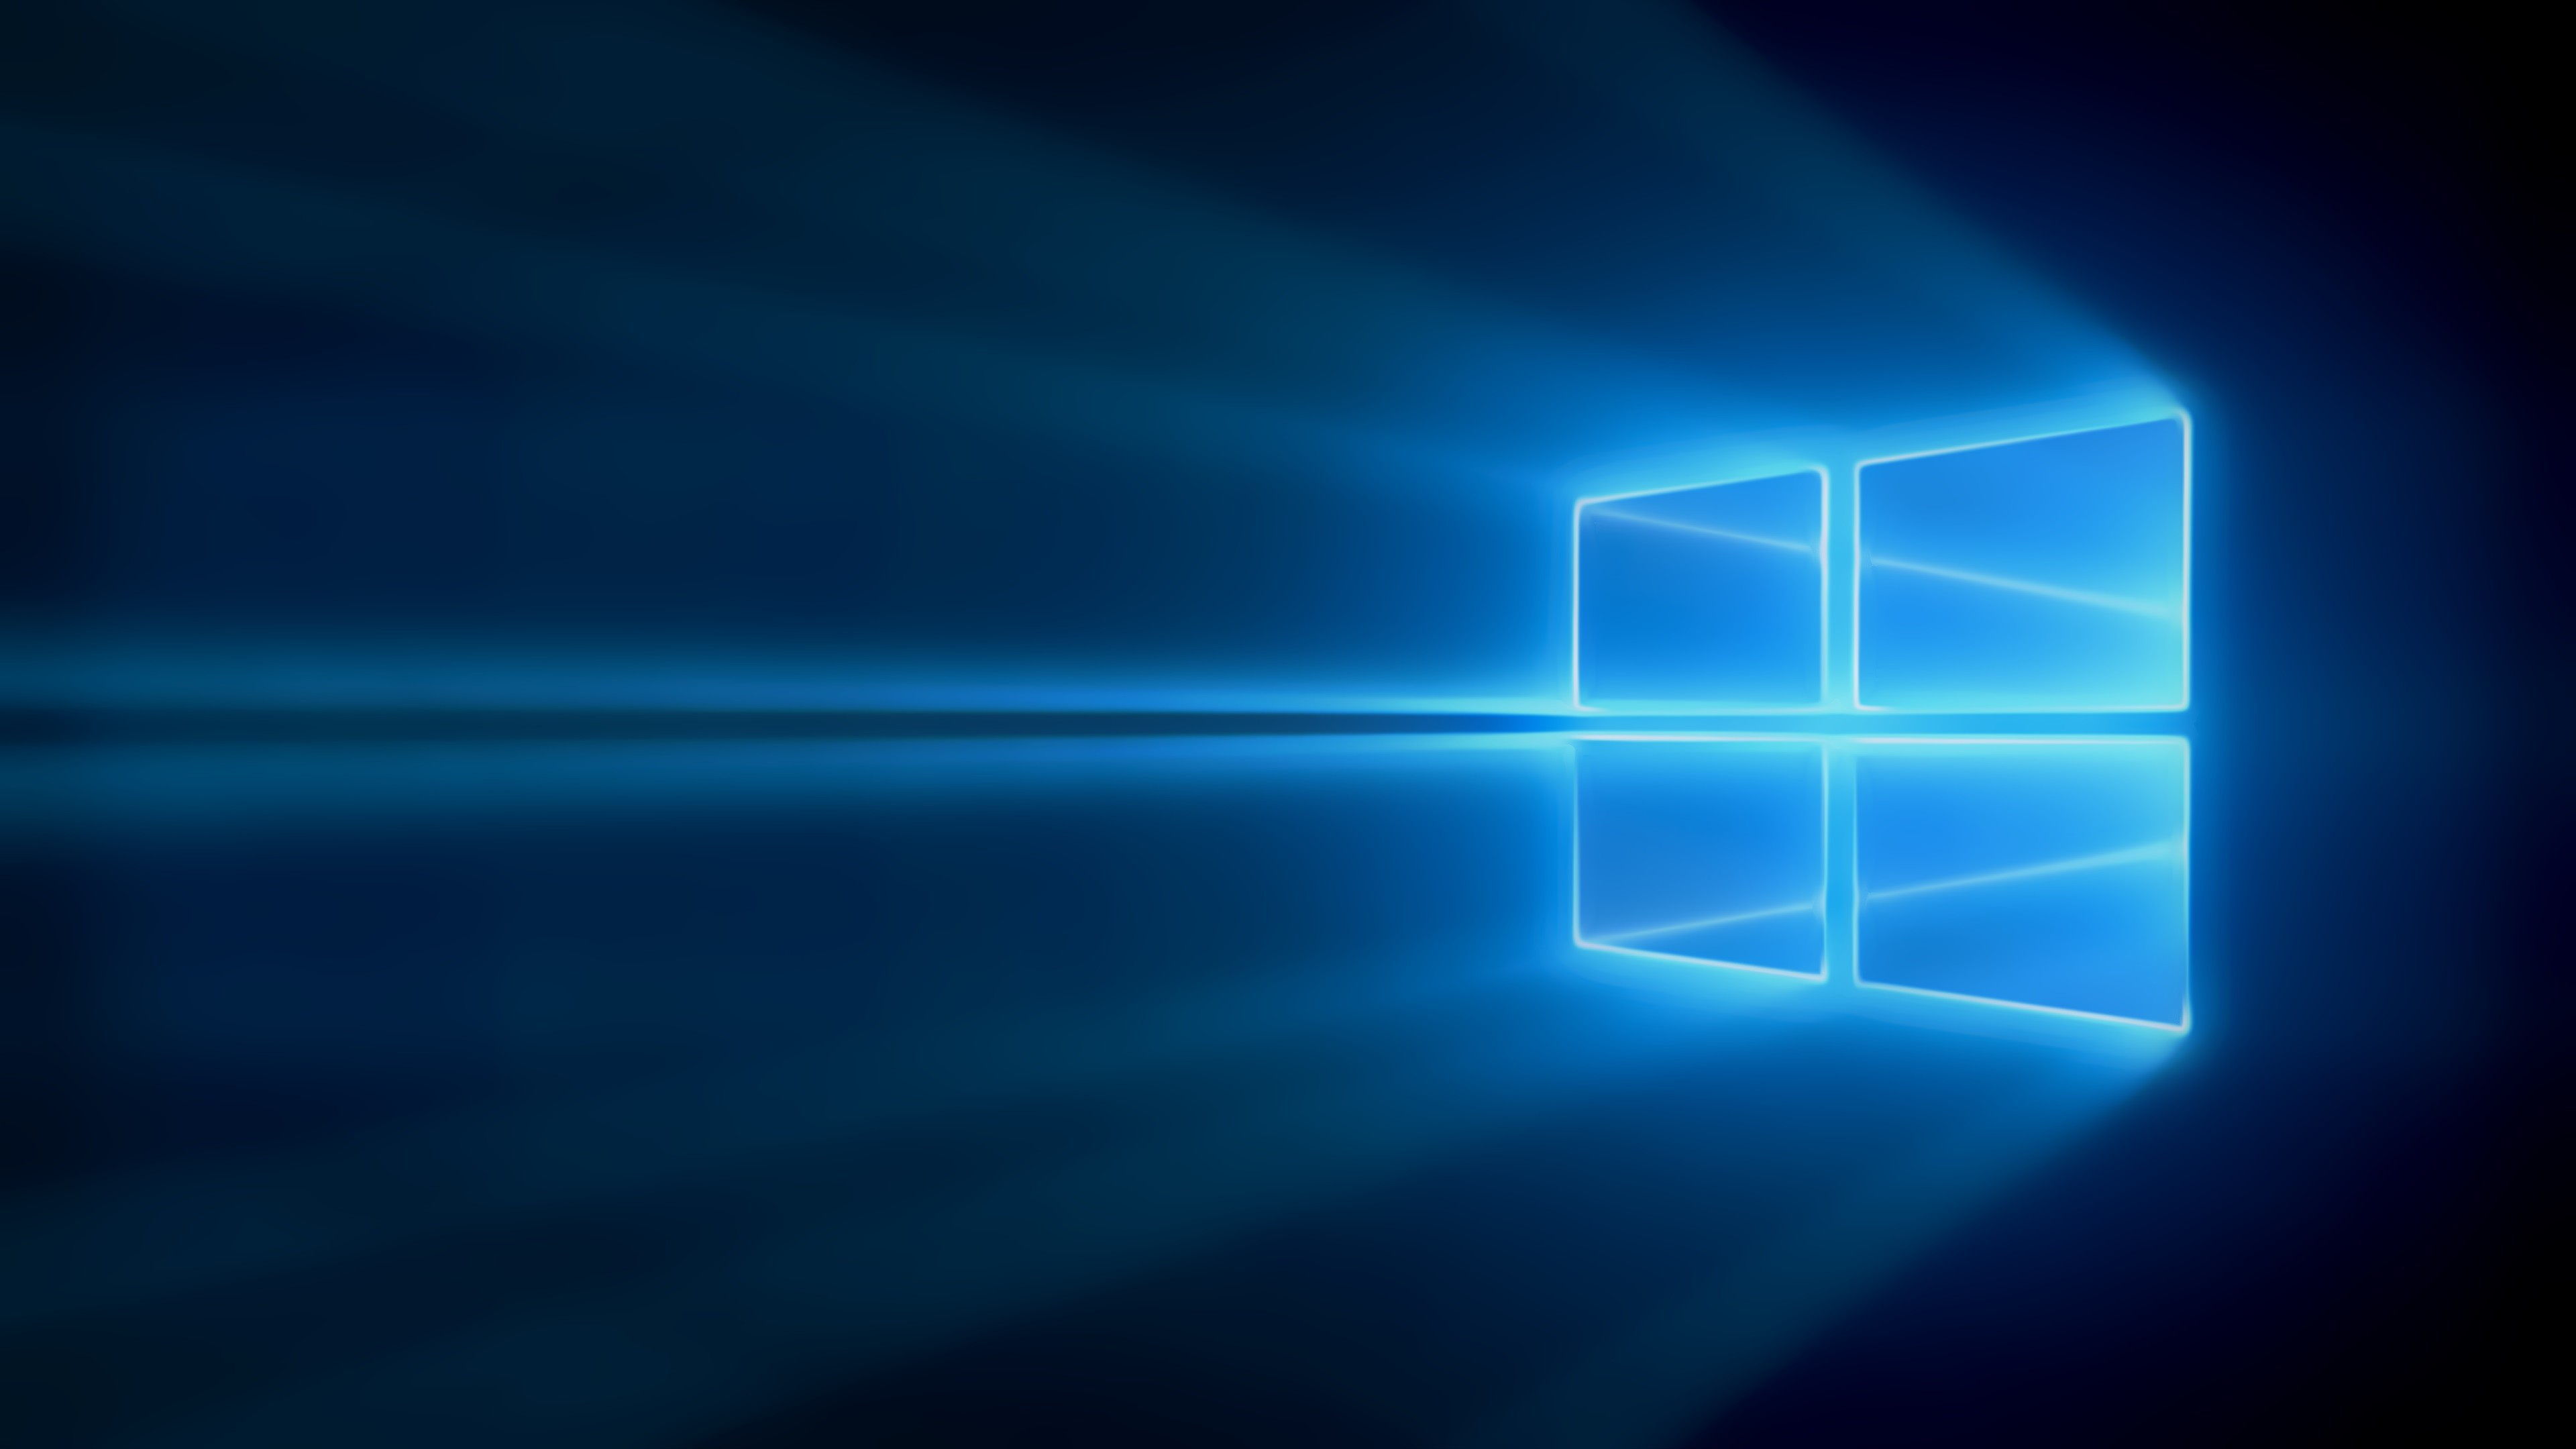 windows10-fond-ecran-wallpaper-2